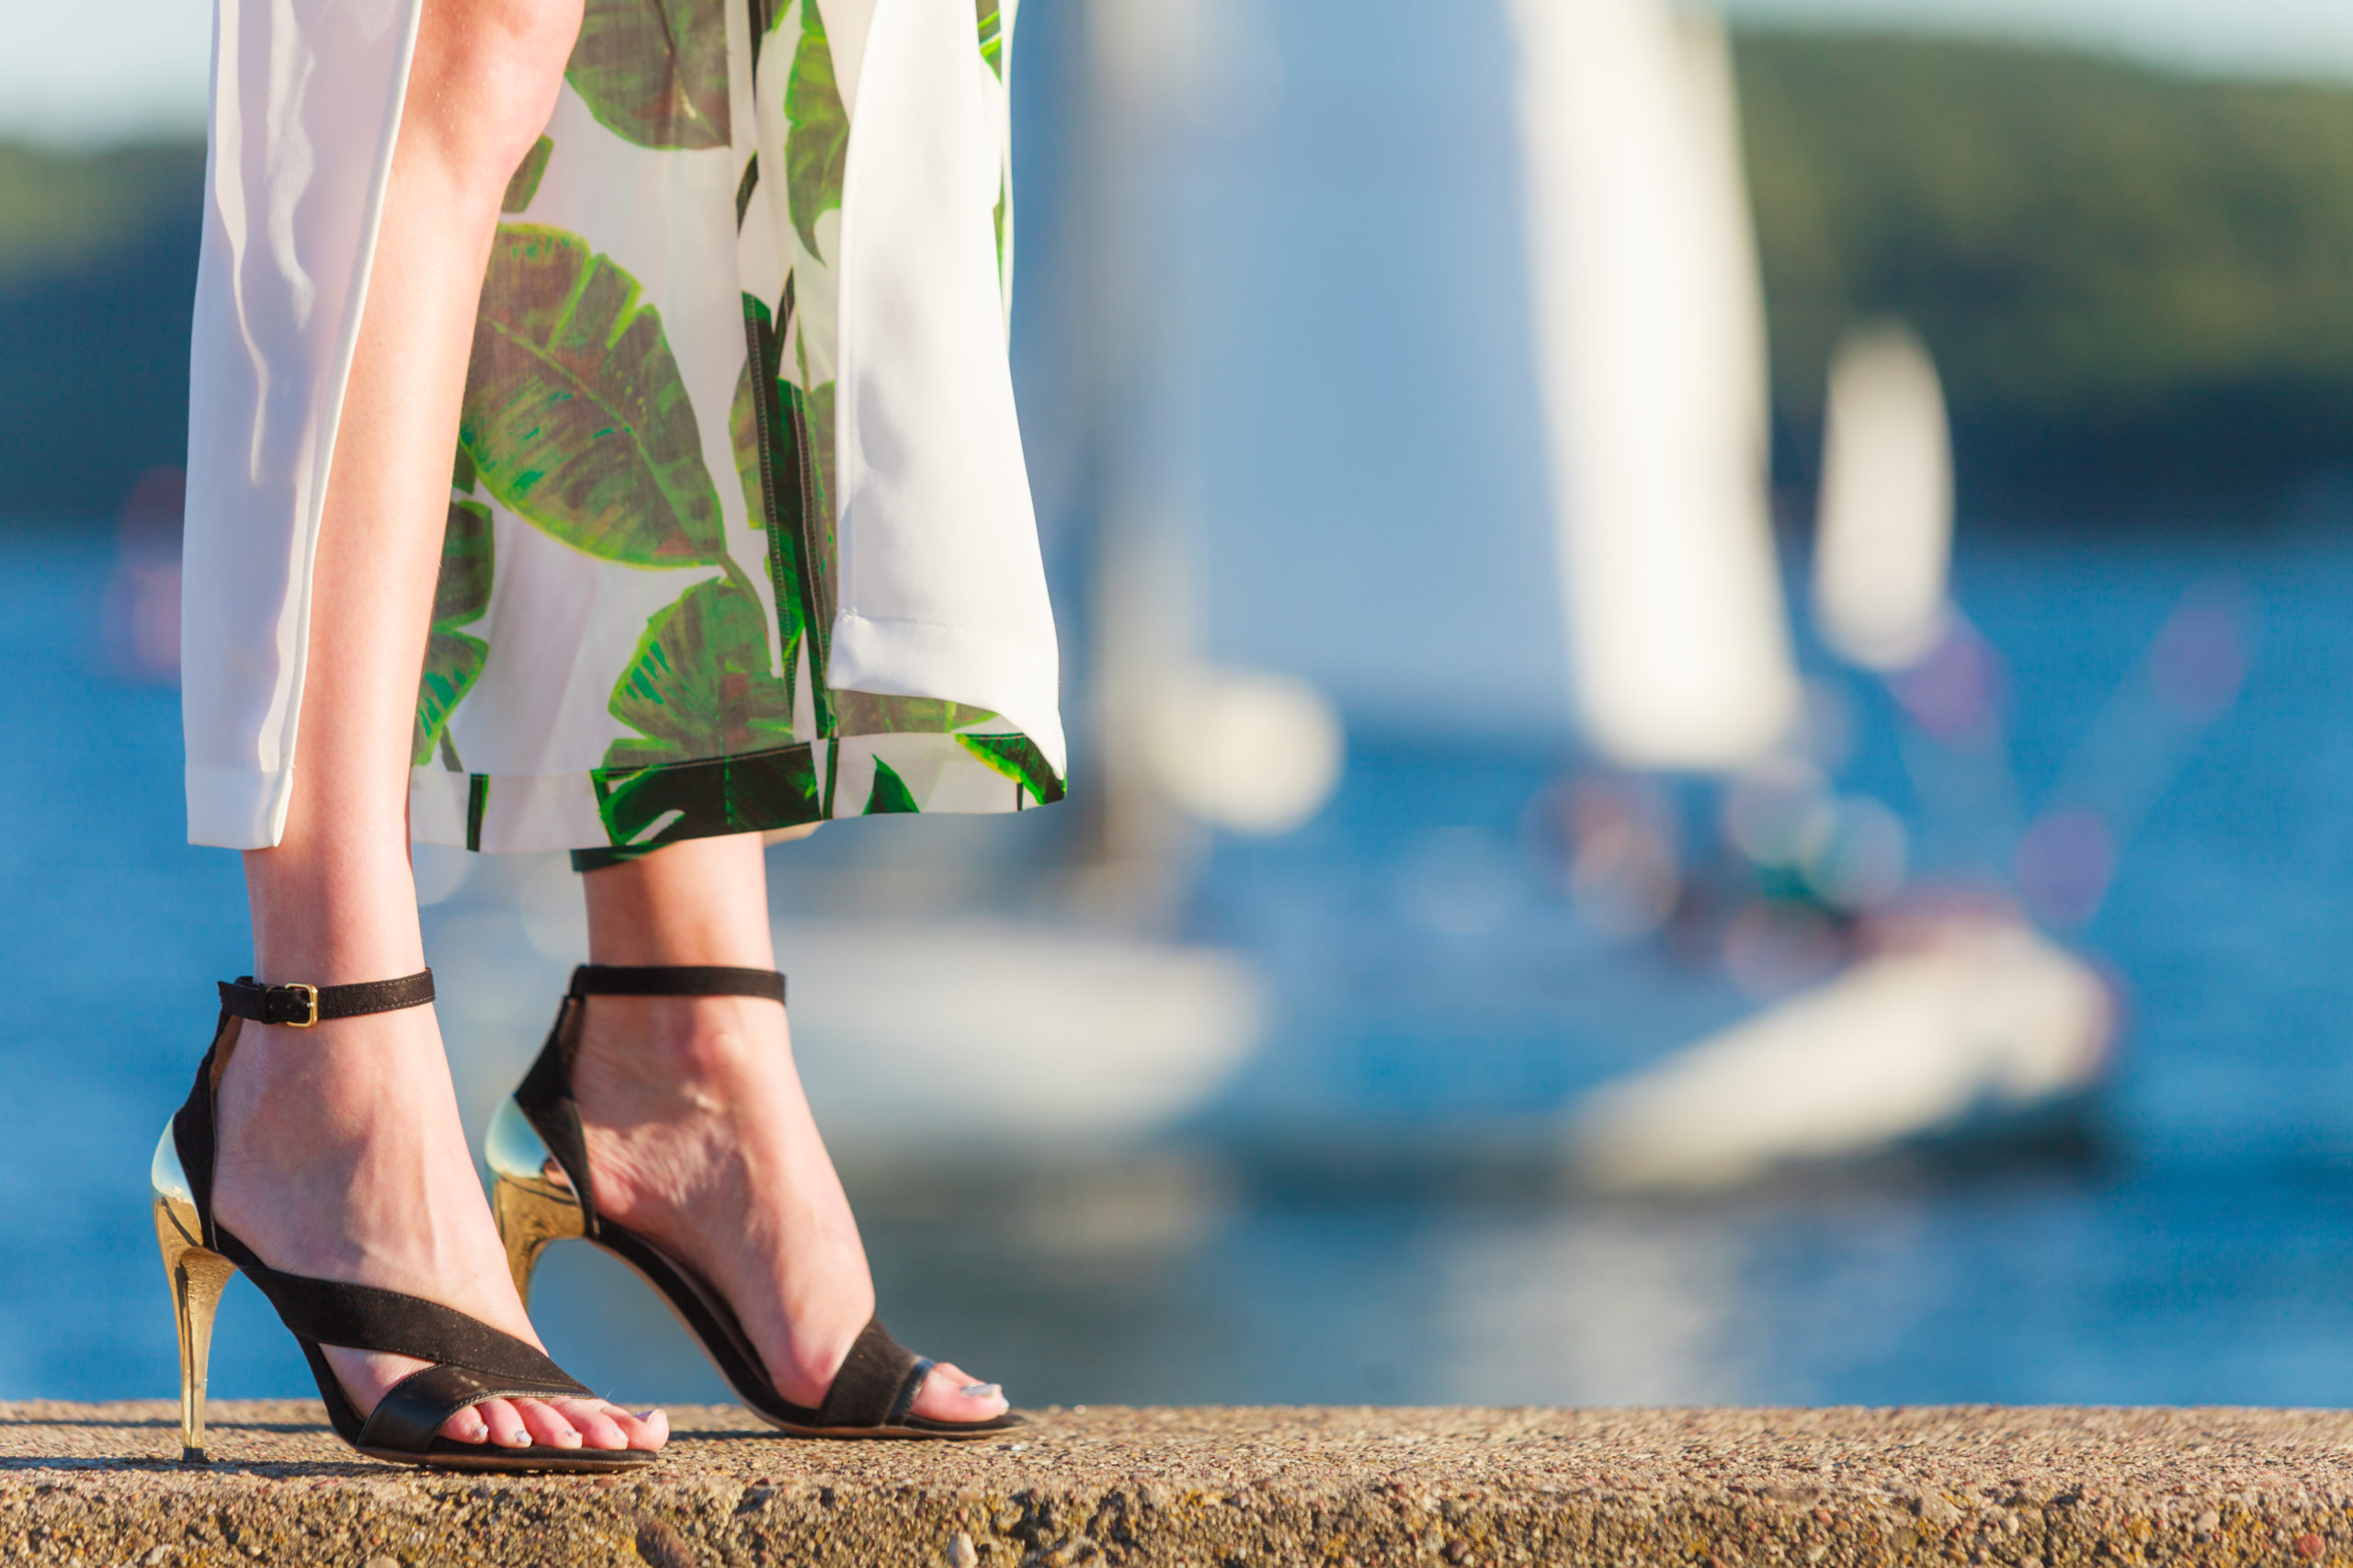 Woman wearing high heeled sandals, standing in front of a body of water with sailboats on it